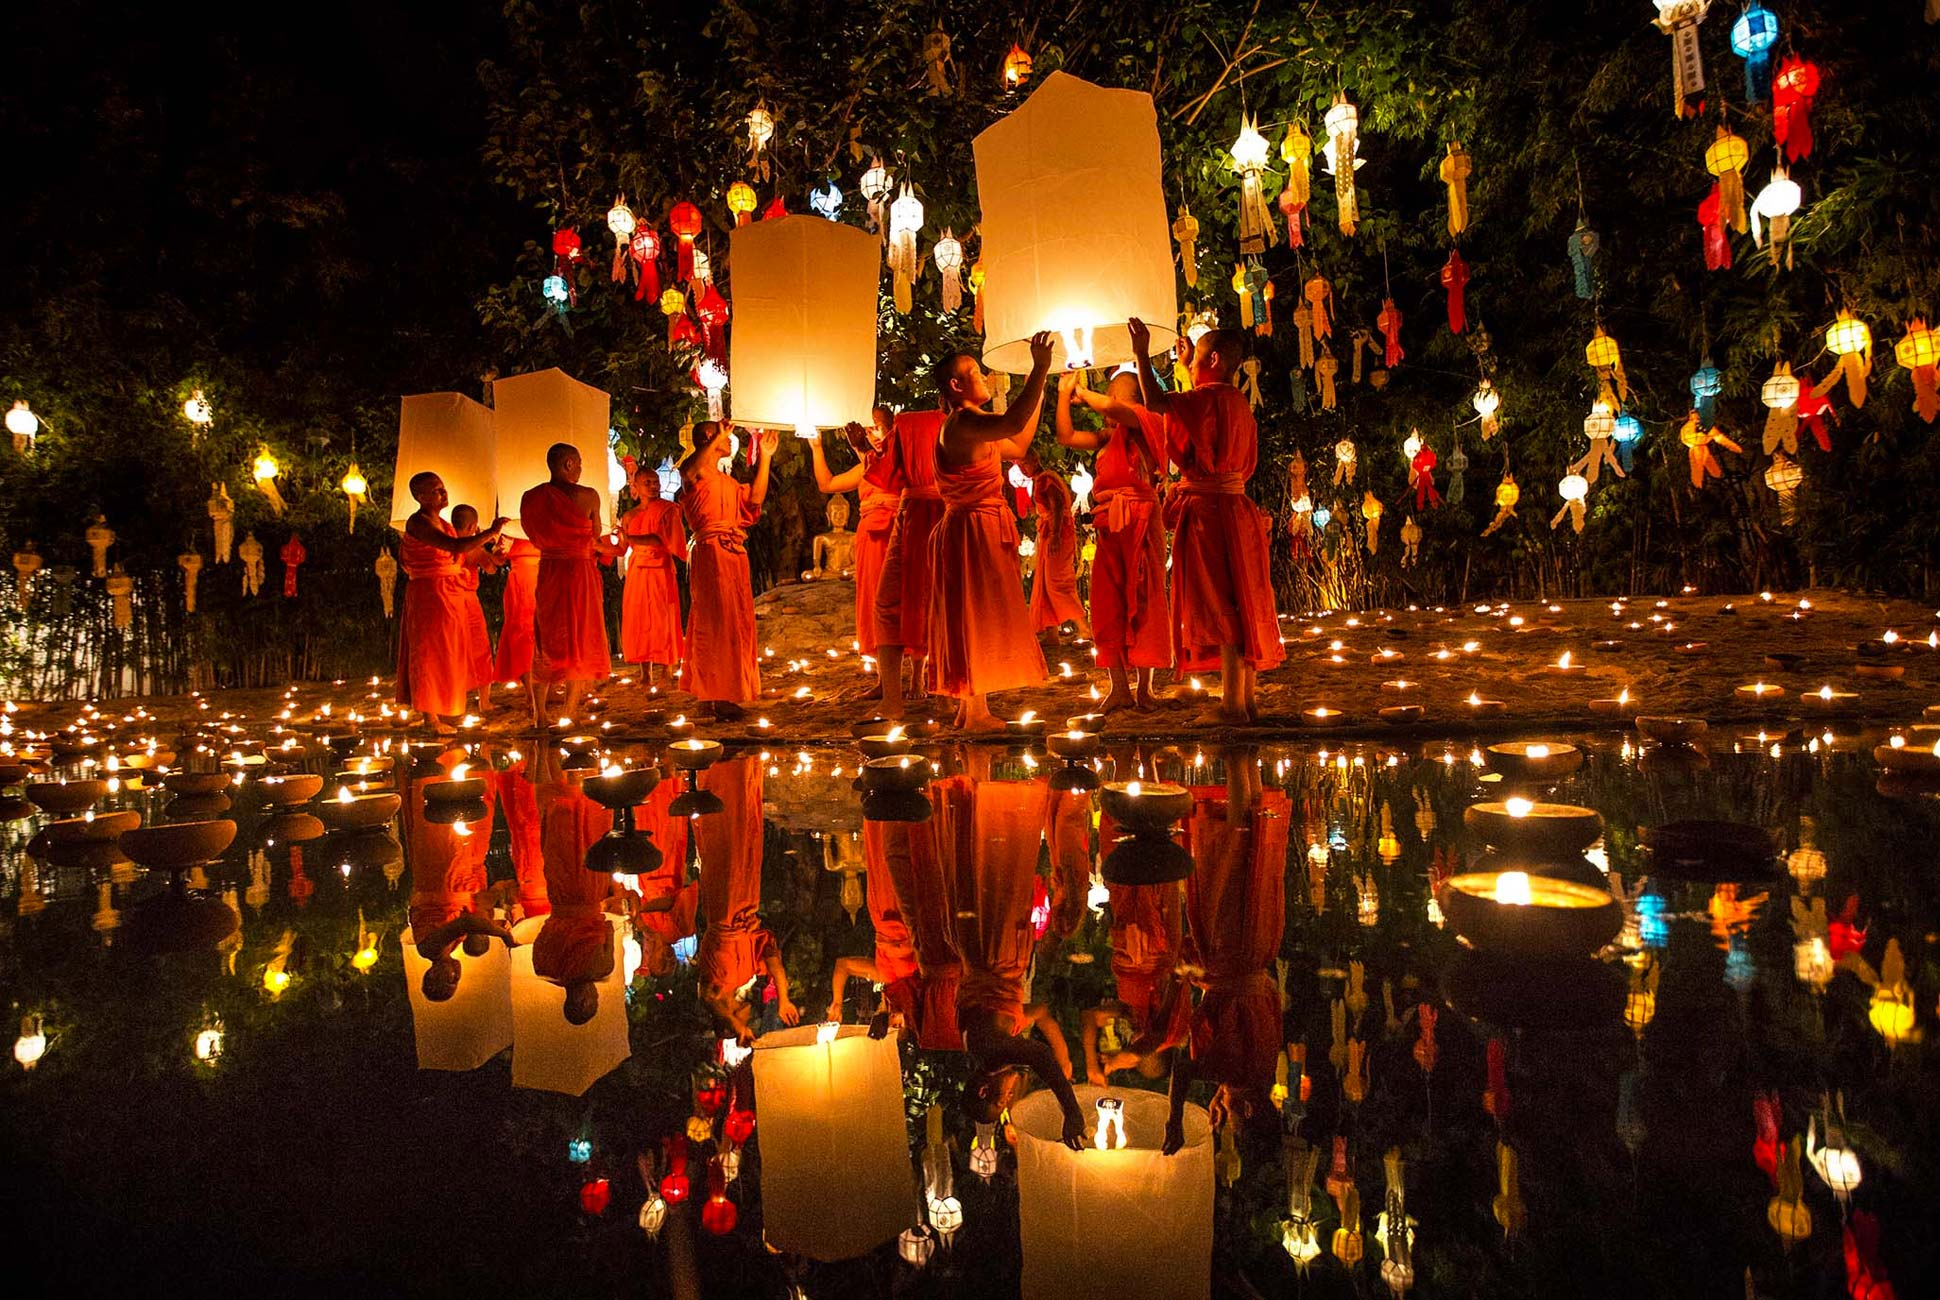 Loy Krathong Festival of light in Chiang Mai, Thailand